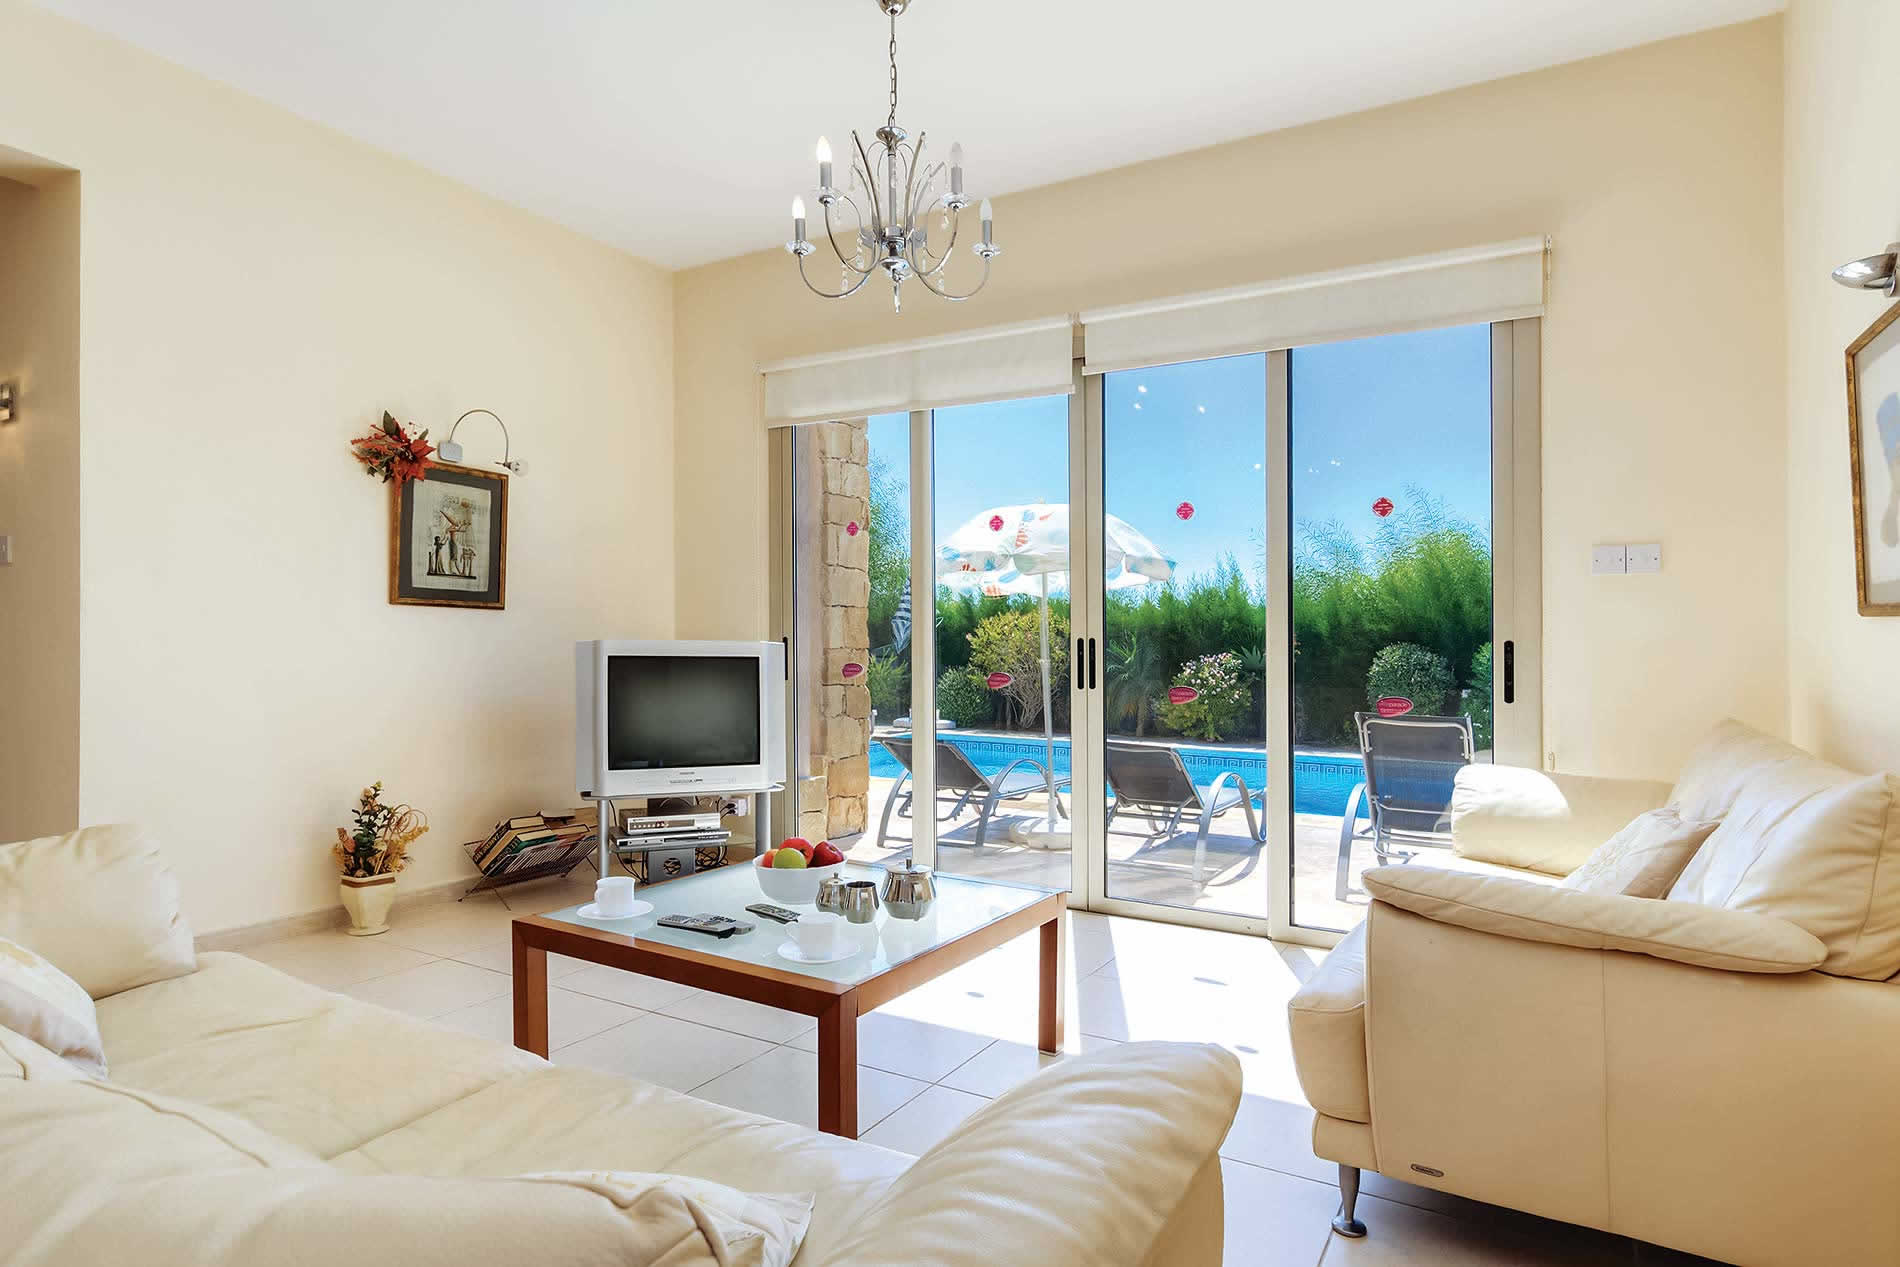 Villa Shanta in Coral Bay - sleeps 6 people